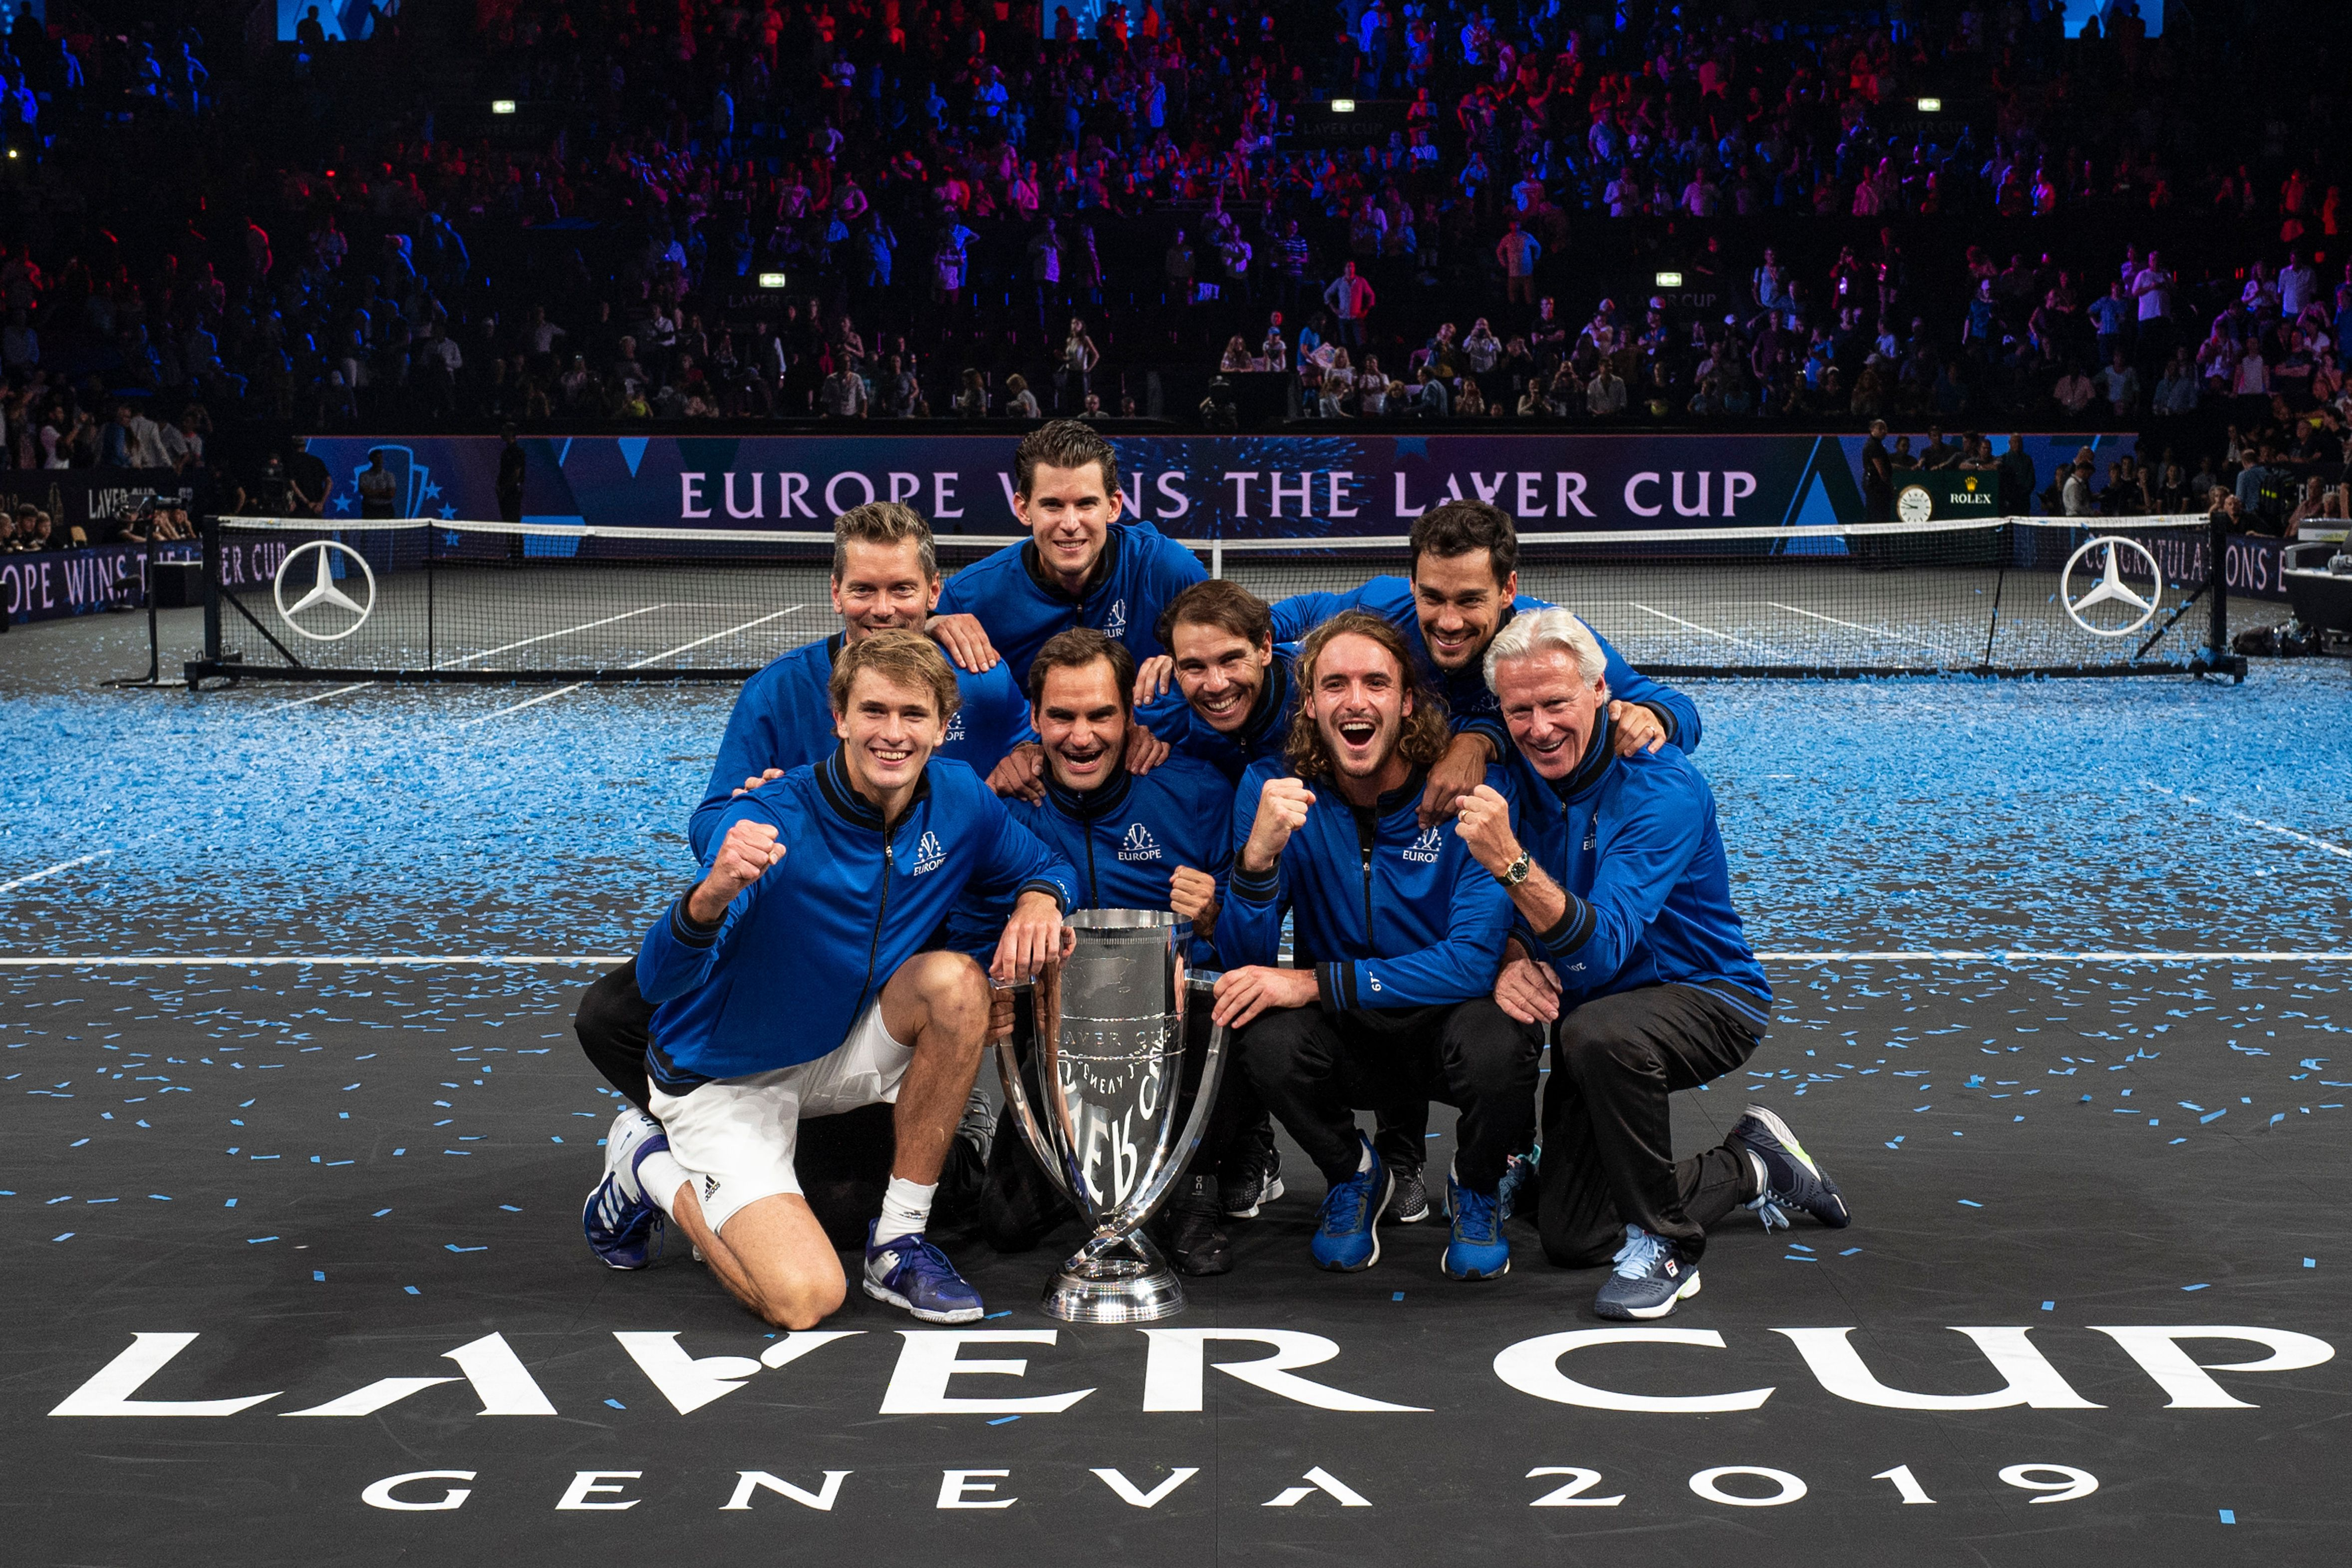 Team Europe at the Laver Cup